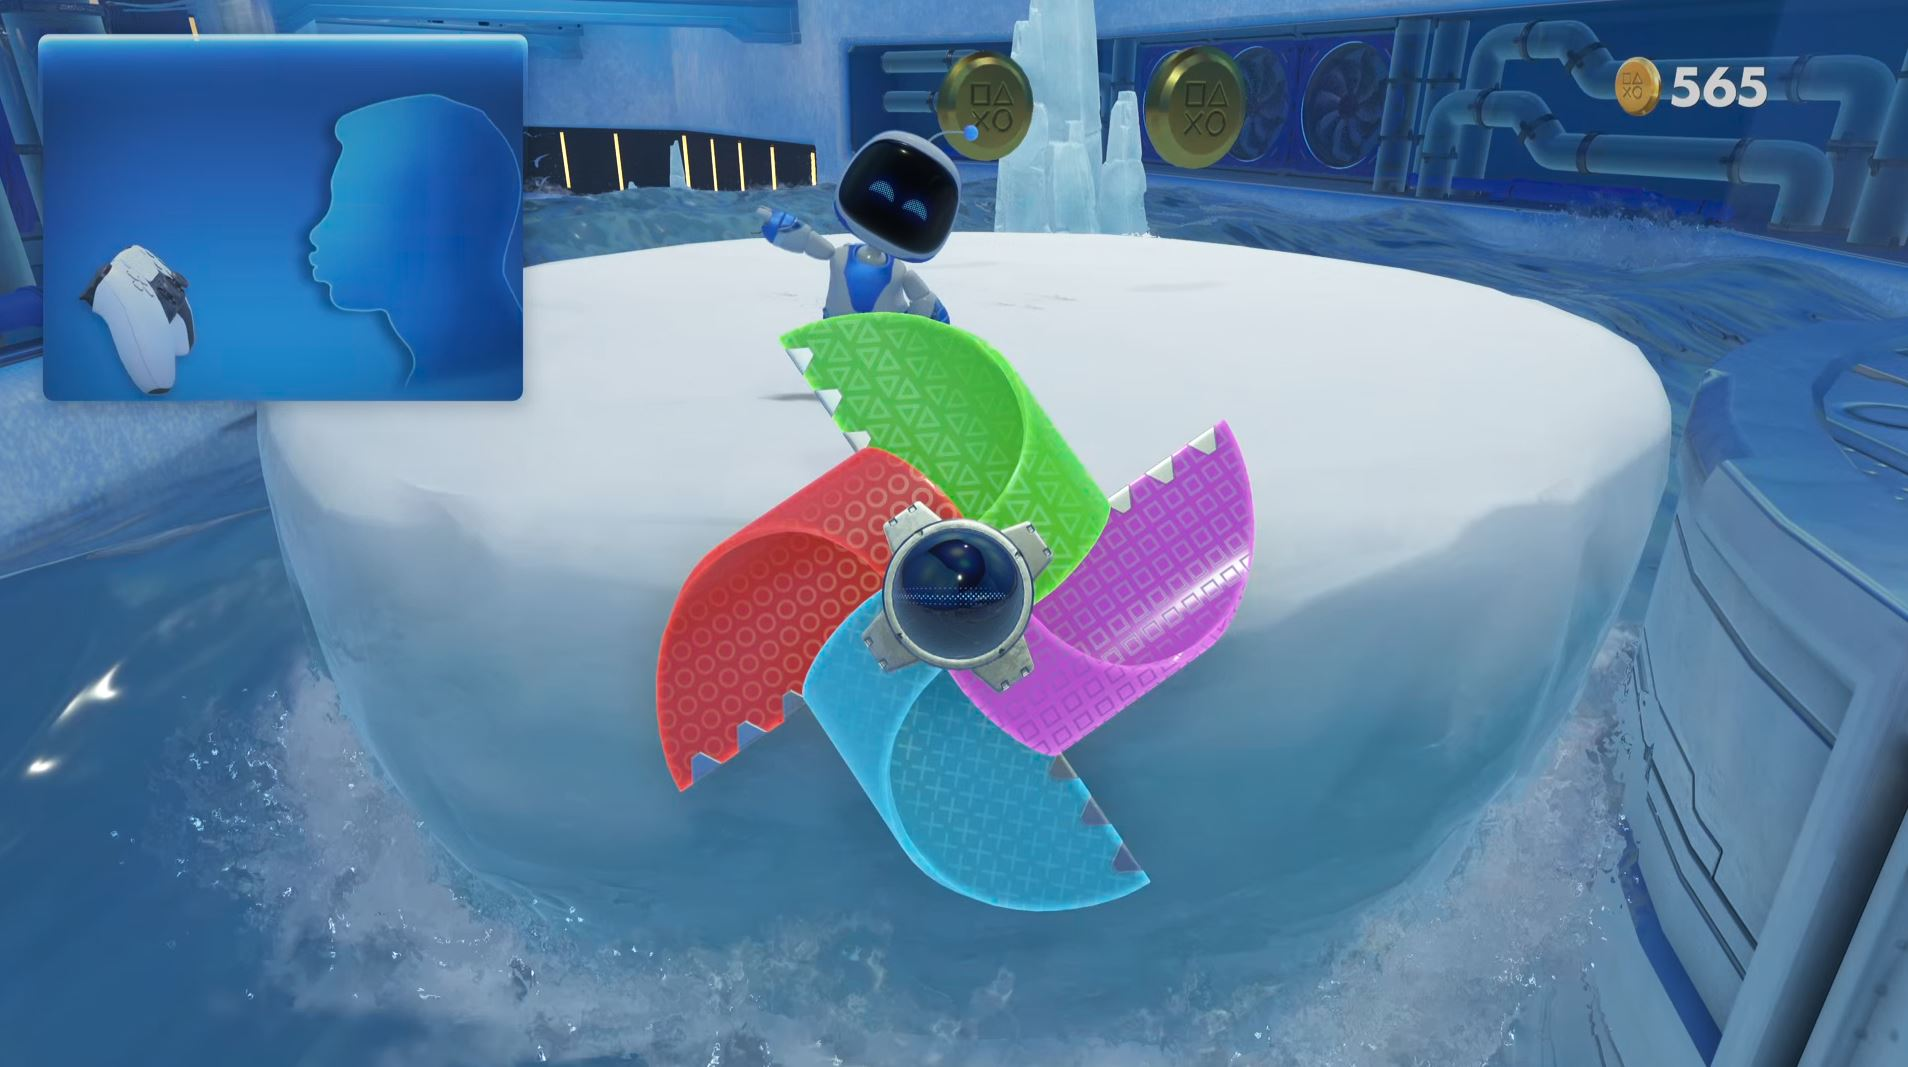 Players must blow on the DualSense gamepad to make the pinwheel spin.